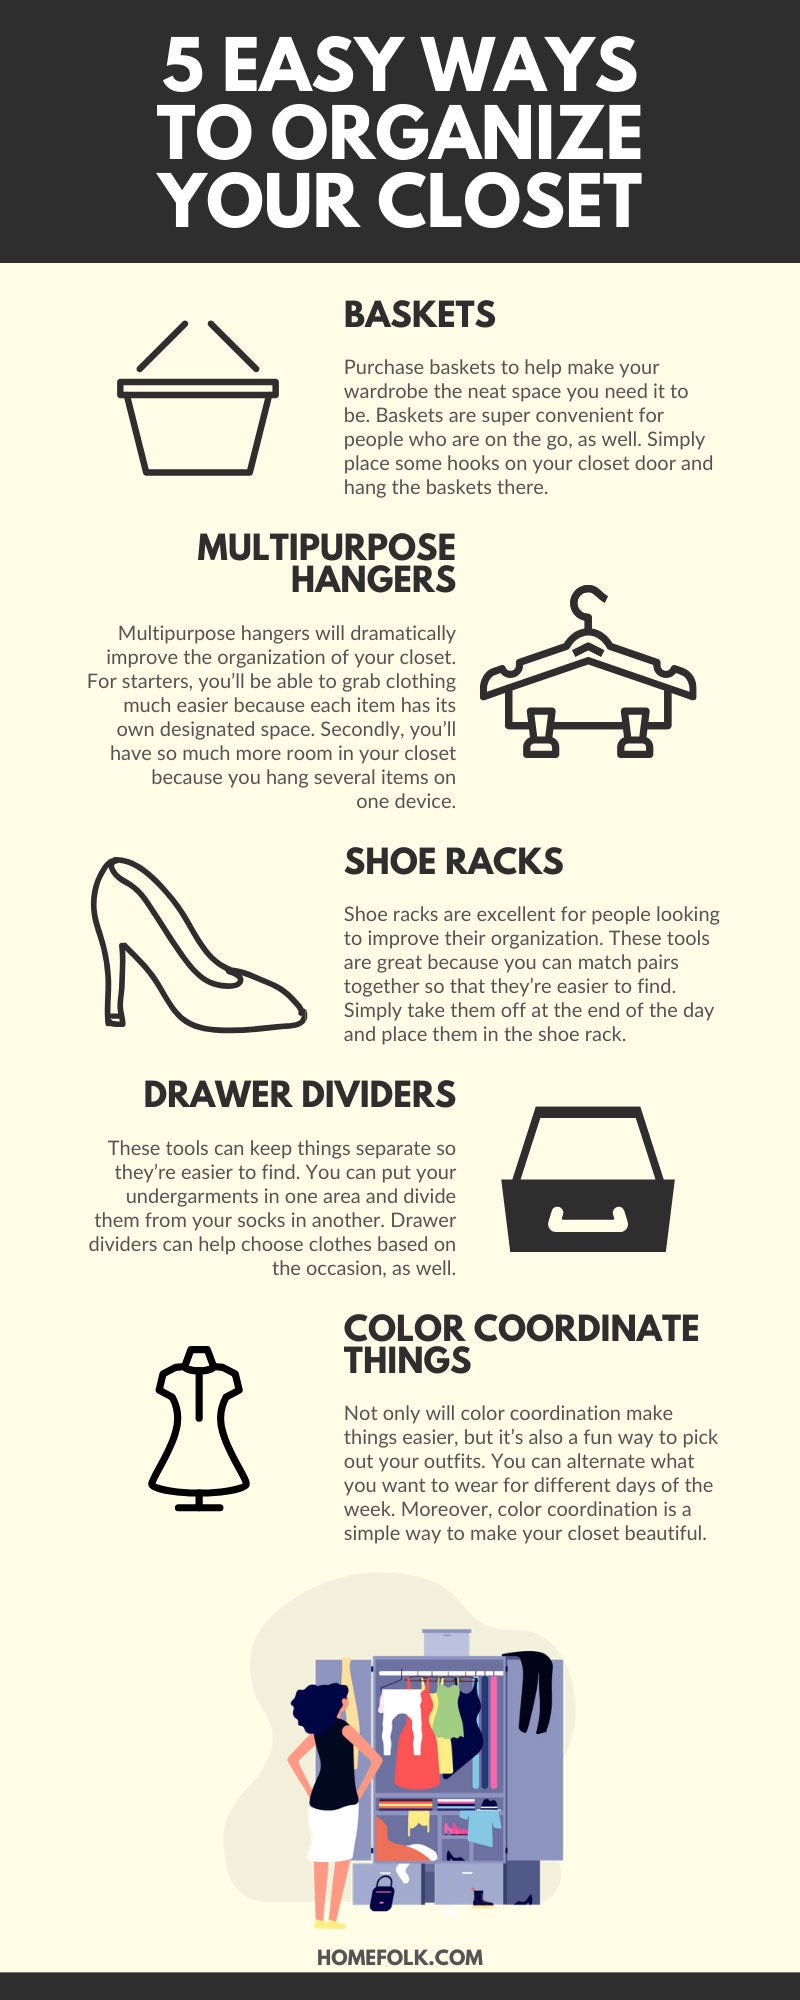 5 Easy Ways to Organize Your Closet